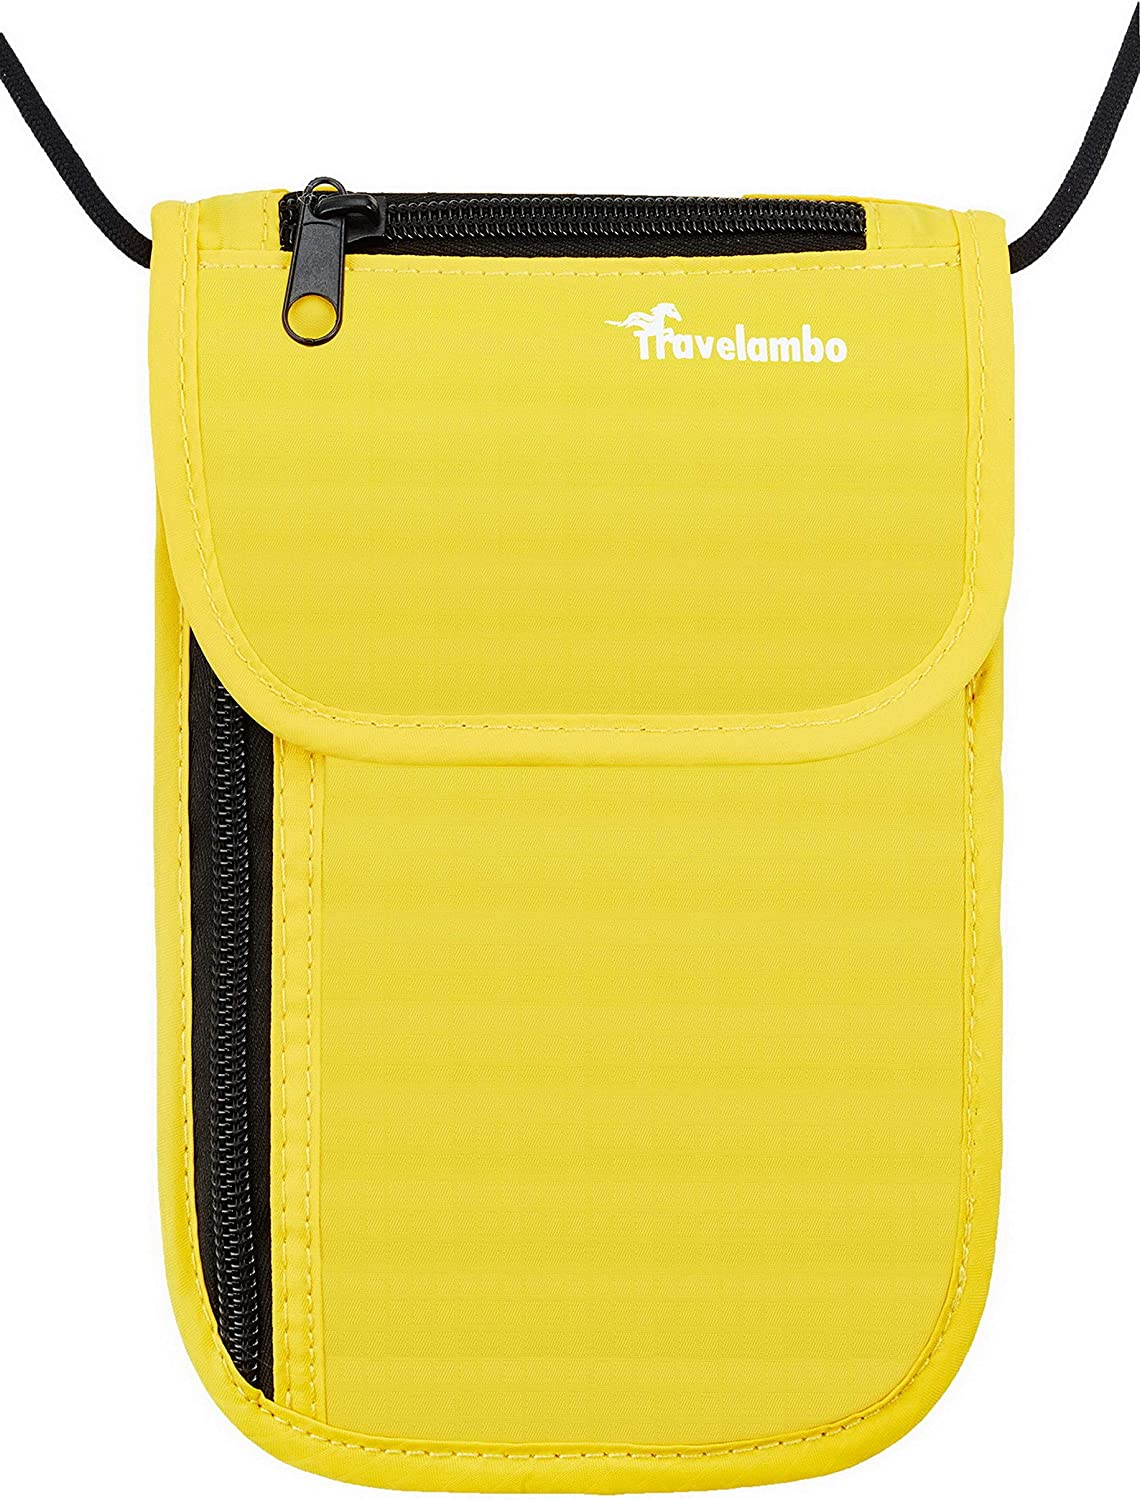 yellow Travelambo Neck Wallet and Passport Holder Travel Wallet with RFID Blocking for Security